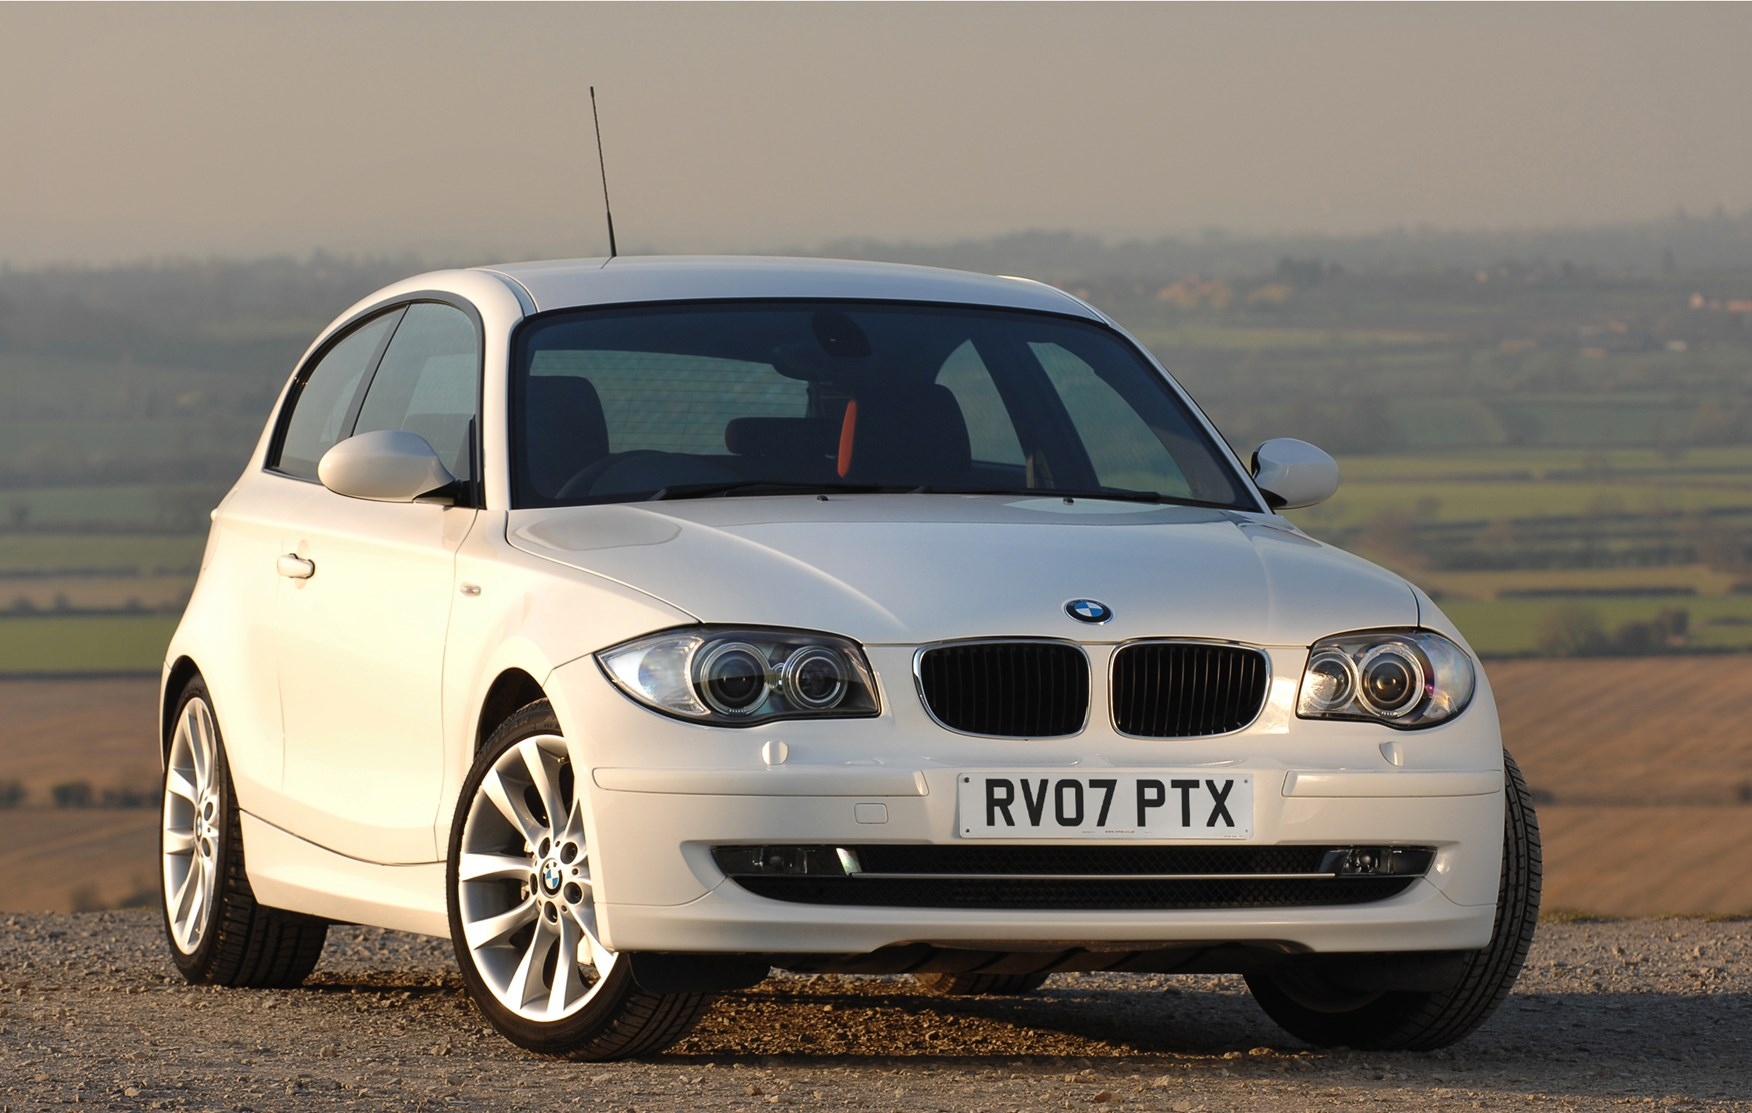 Used BMW 1-Series Hatchback (2004 - 2011) Review | Parkers